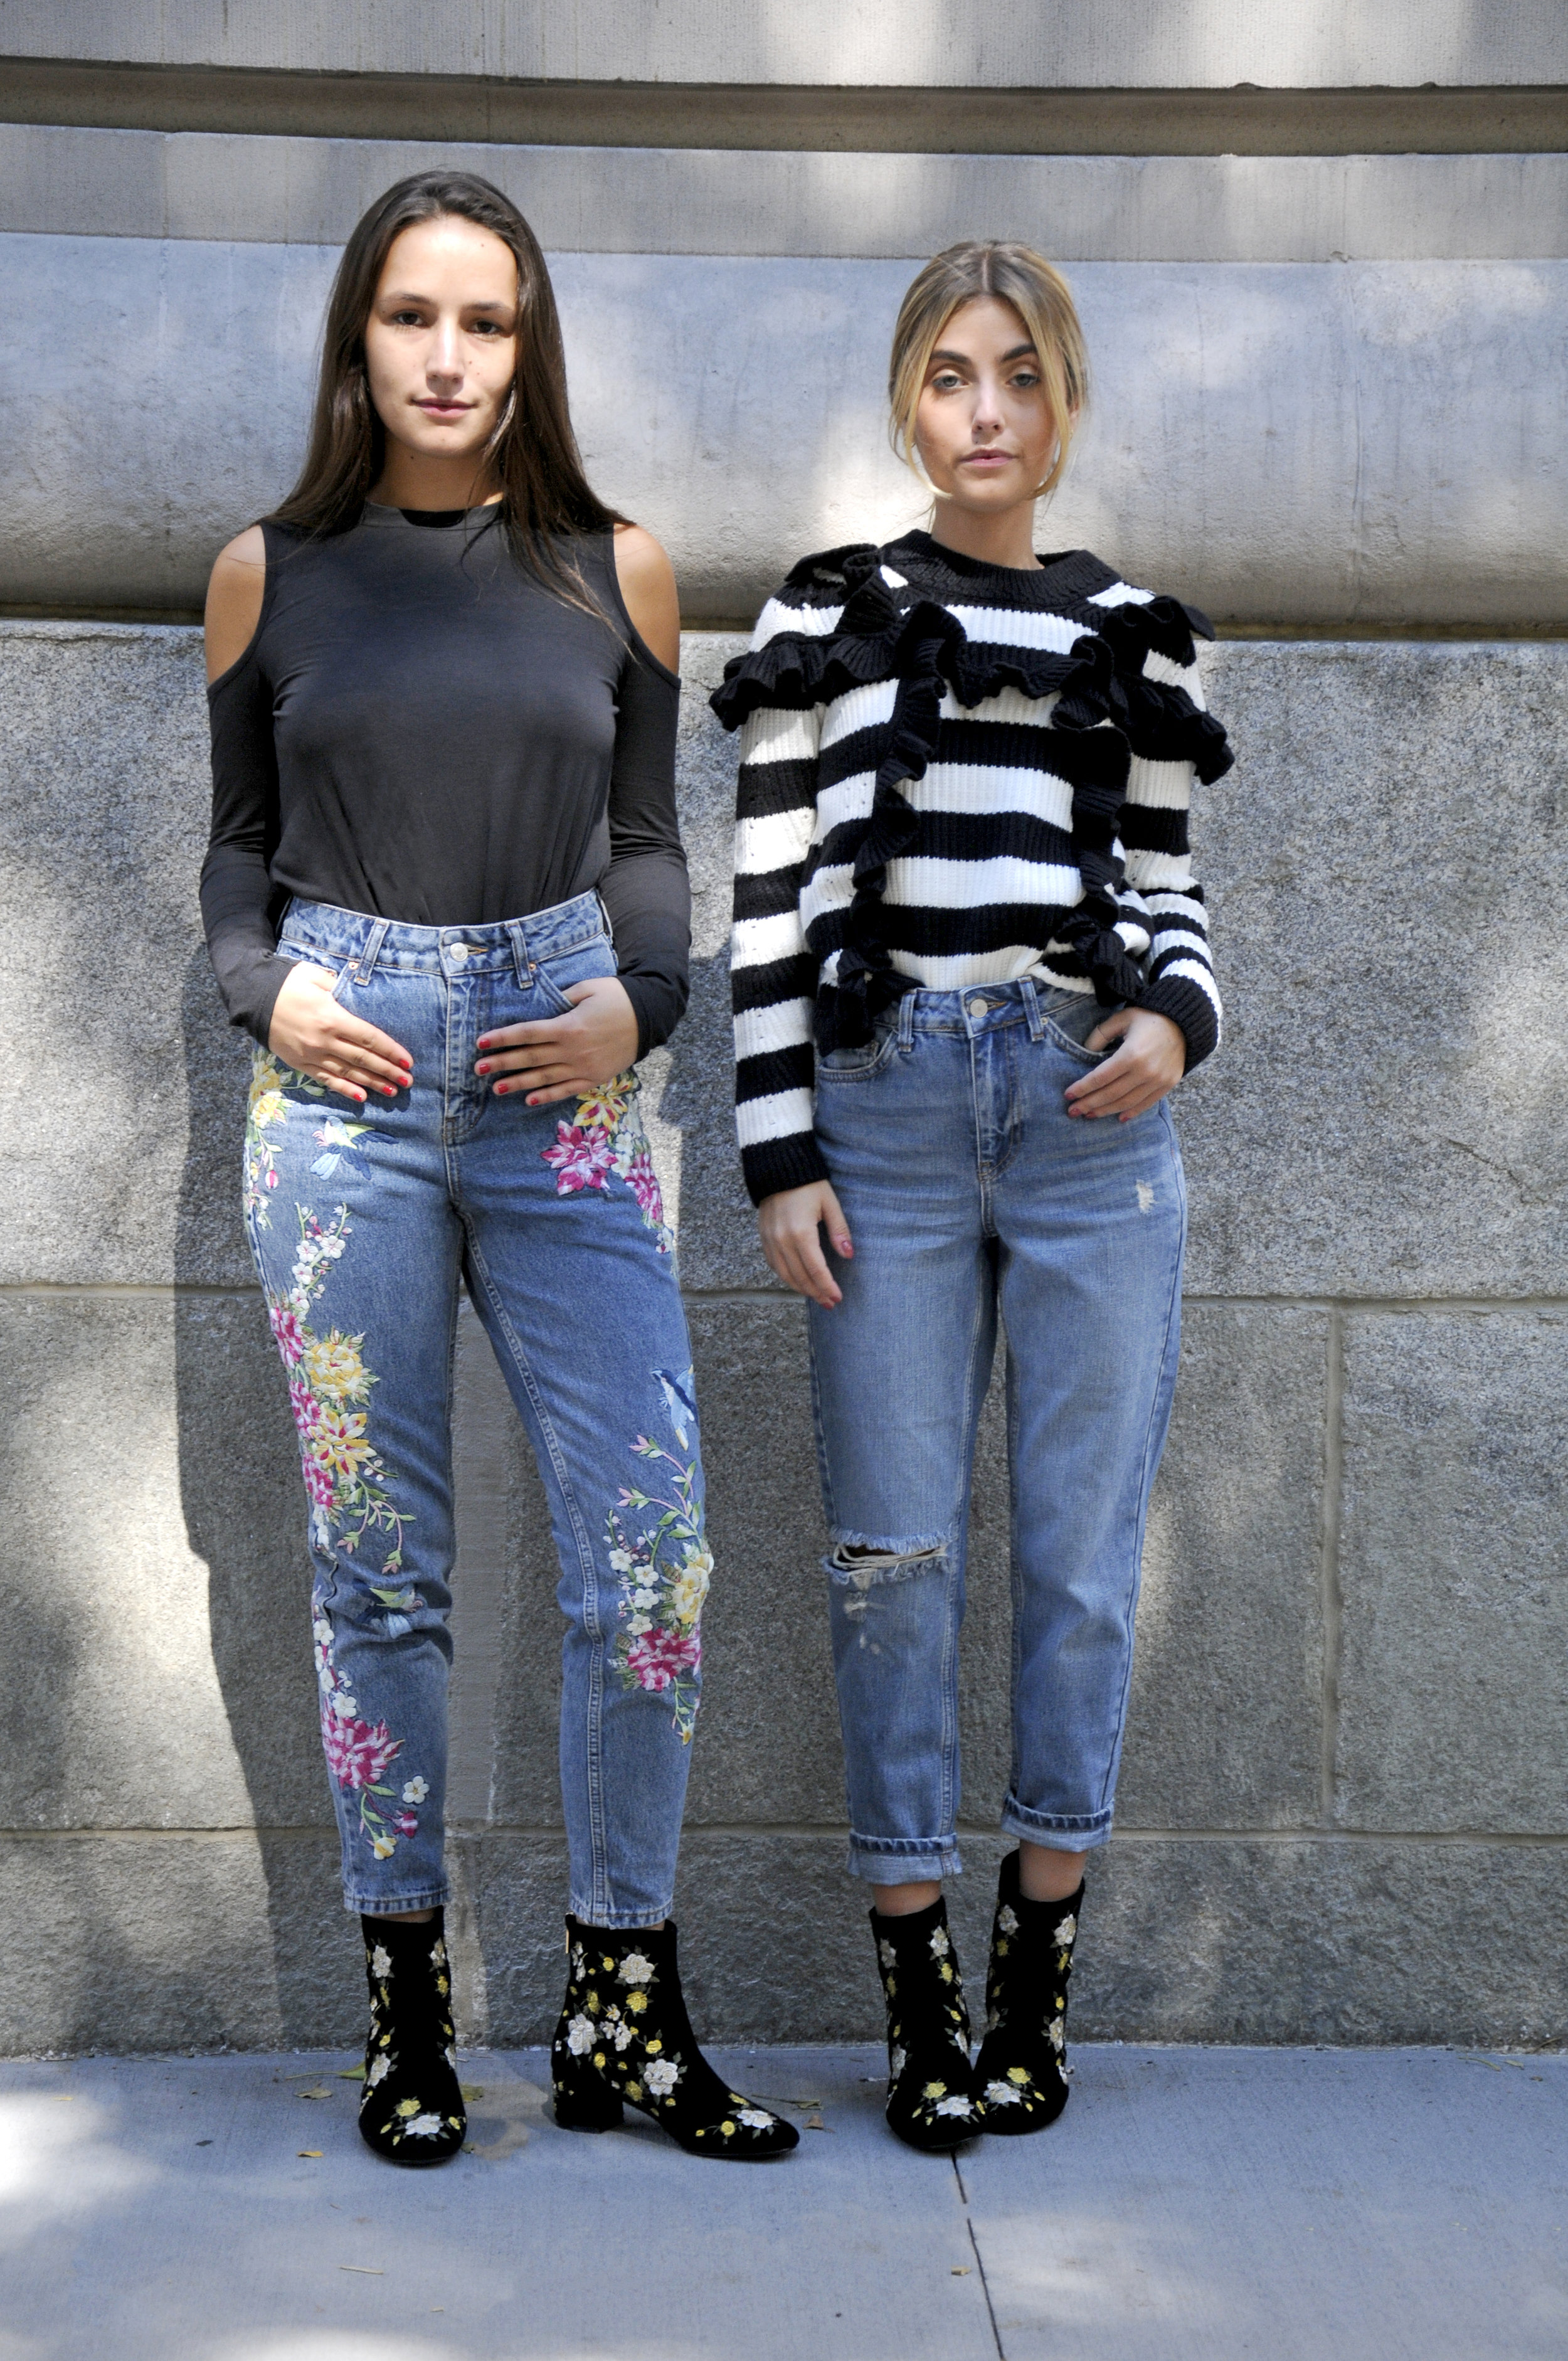 SOPHIE AND CHARLOTTE BICKLEY YIN 2MY YANG SISTER BLOGGER TOPSHOP 2016